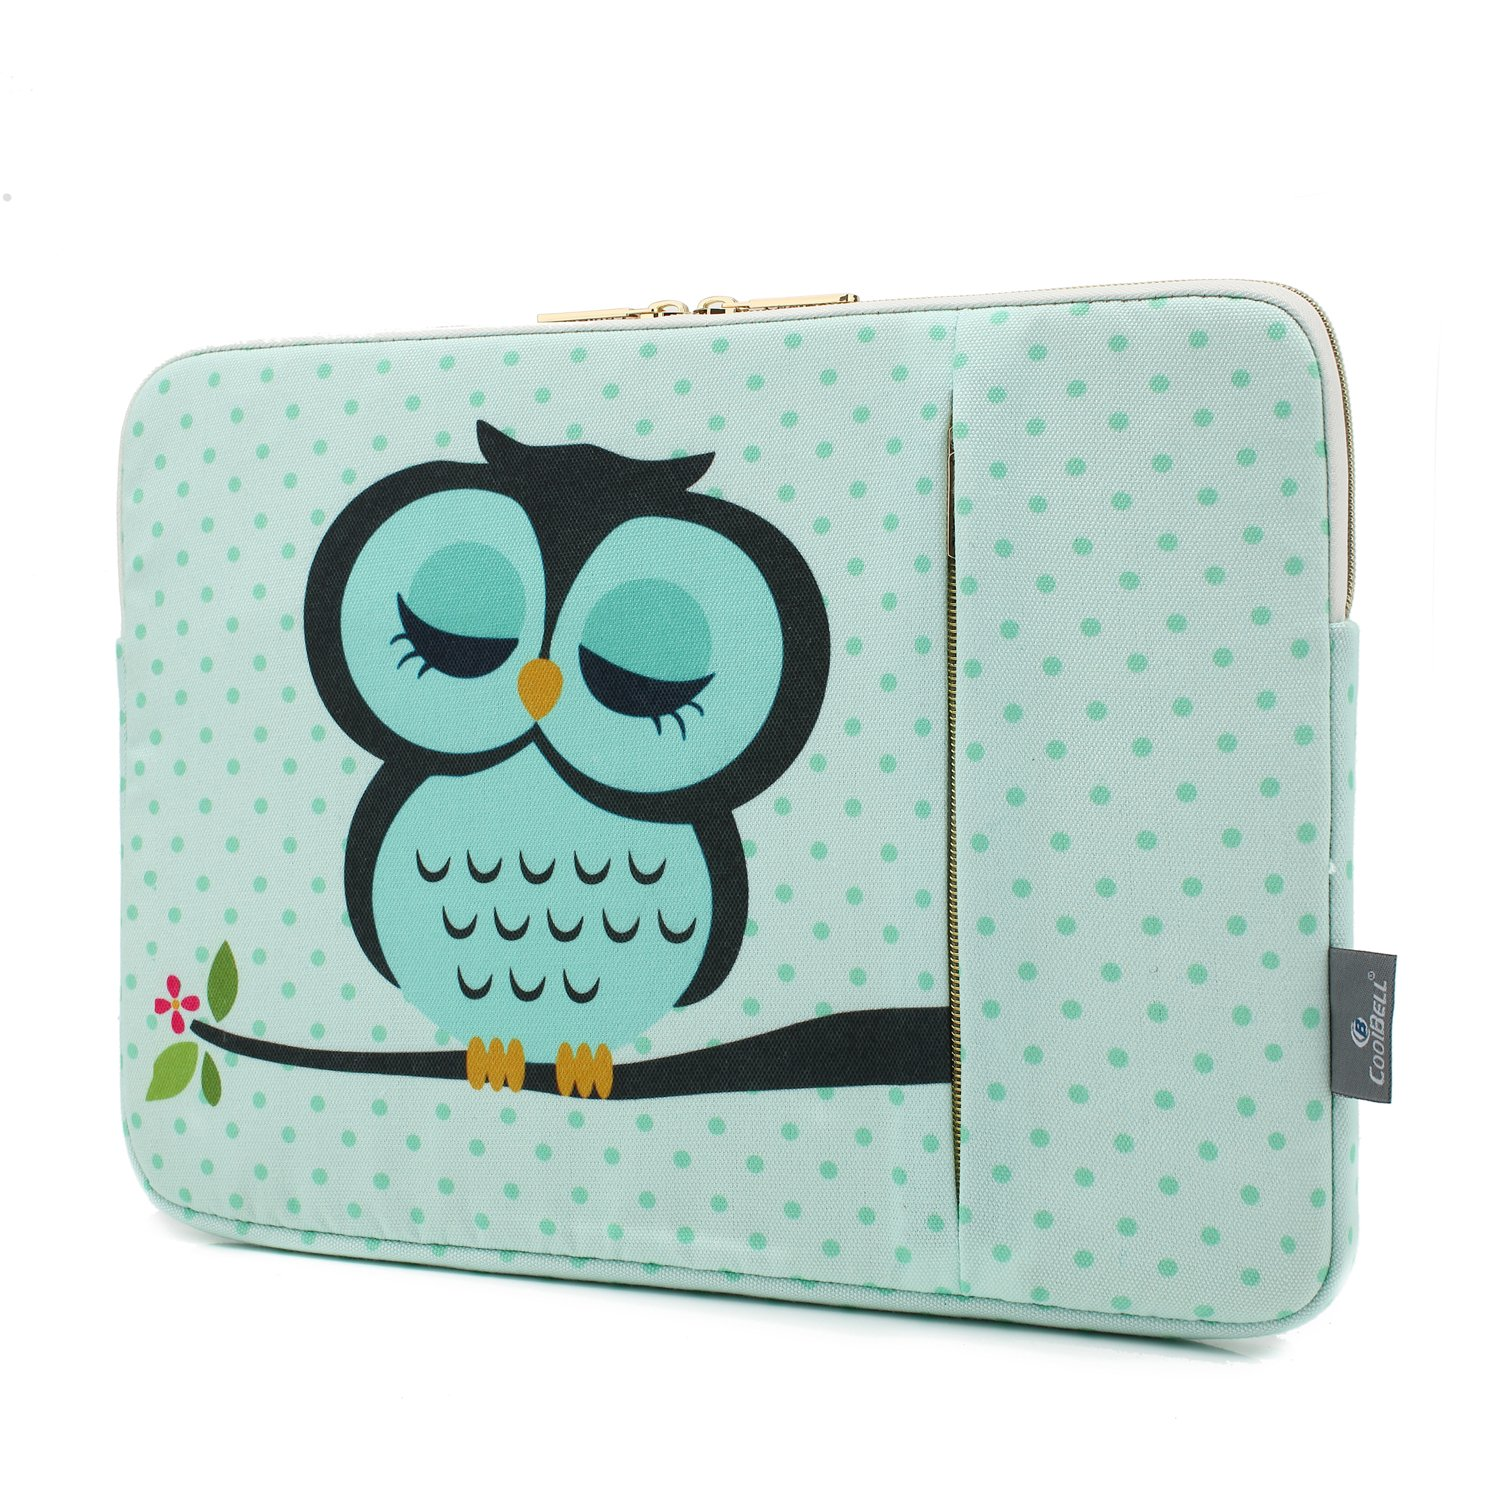 CoolBELL 13.3 Inch Laptop Sleeve Case Cover With Cute Owl Pattern Laptop Sleeve Bag For Laptop like Acer/Macbook Pro/Macbook Air/Asus/Dell/Lenovo/Men/Women/Girls